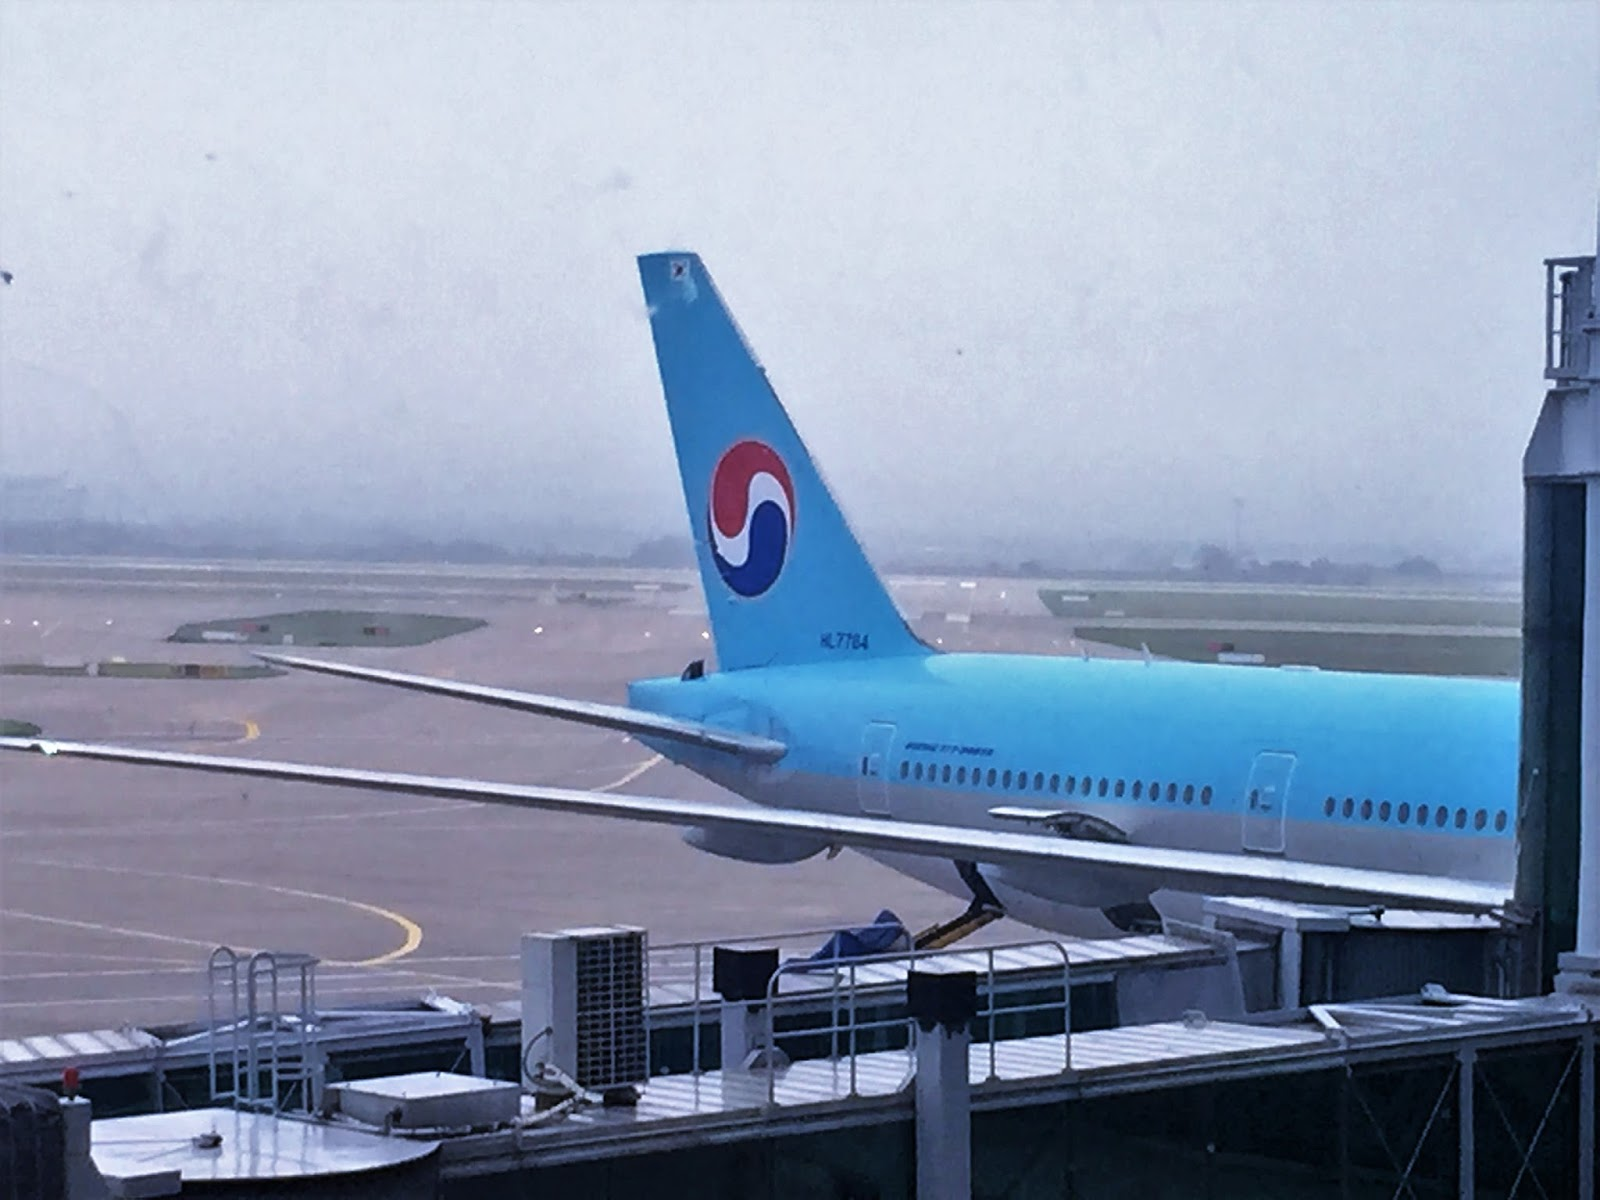 My Kpop Airline Experience   my rolling-stone-kind of life